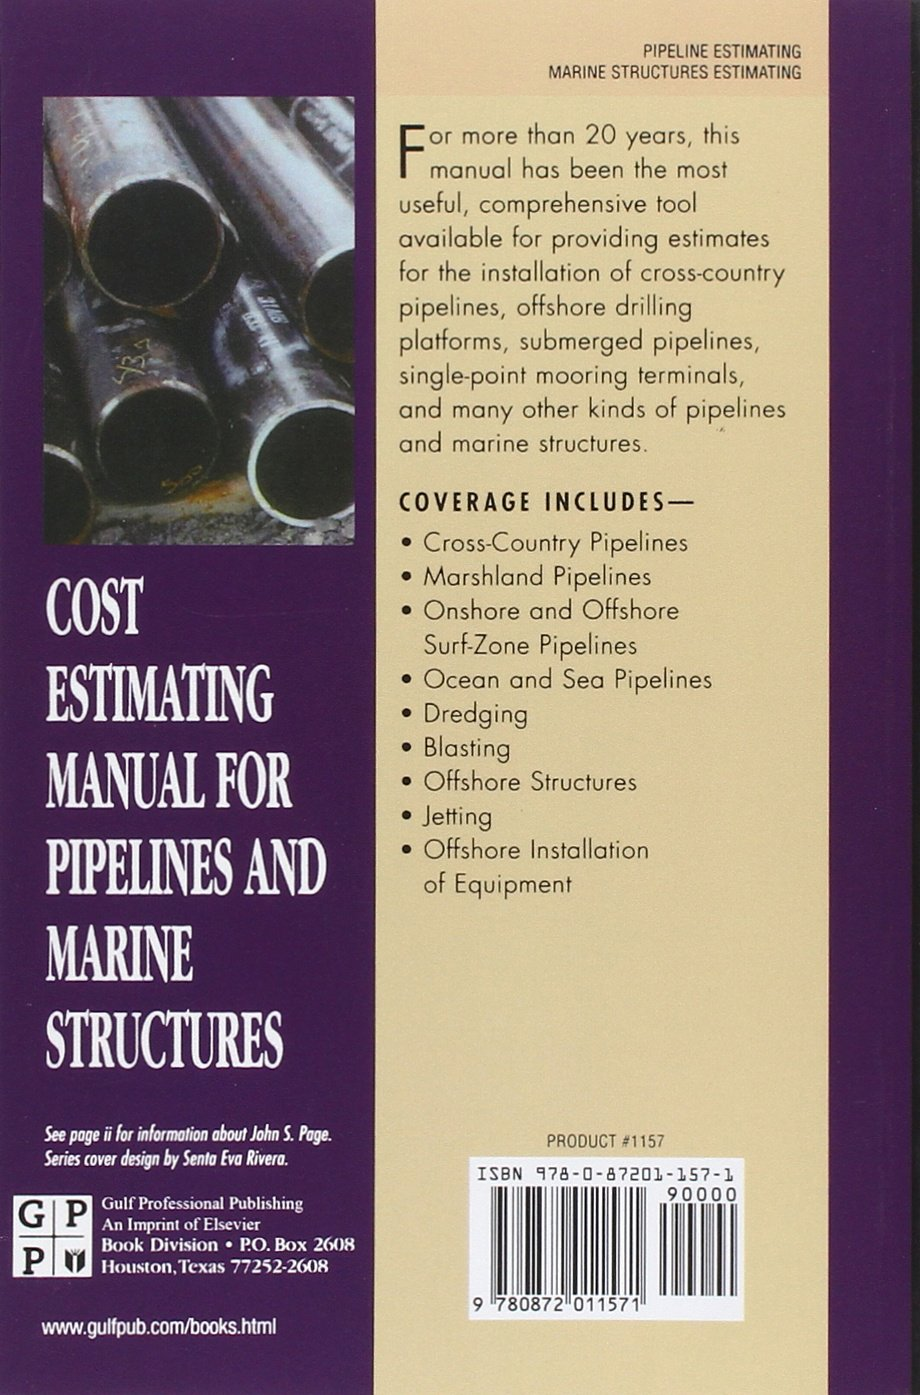 Cost Estimating Manual for Pipelines and Marine Structures (Estimator's Man-Hour Library) by Brand: Gulf Professional Publishing